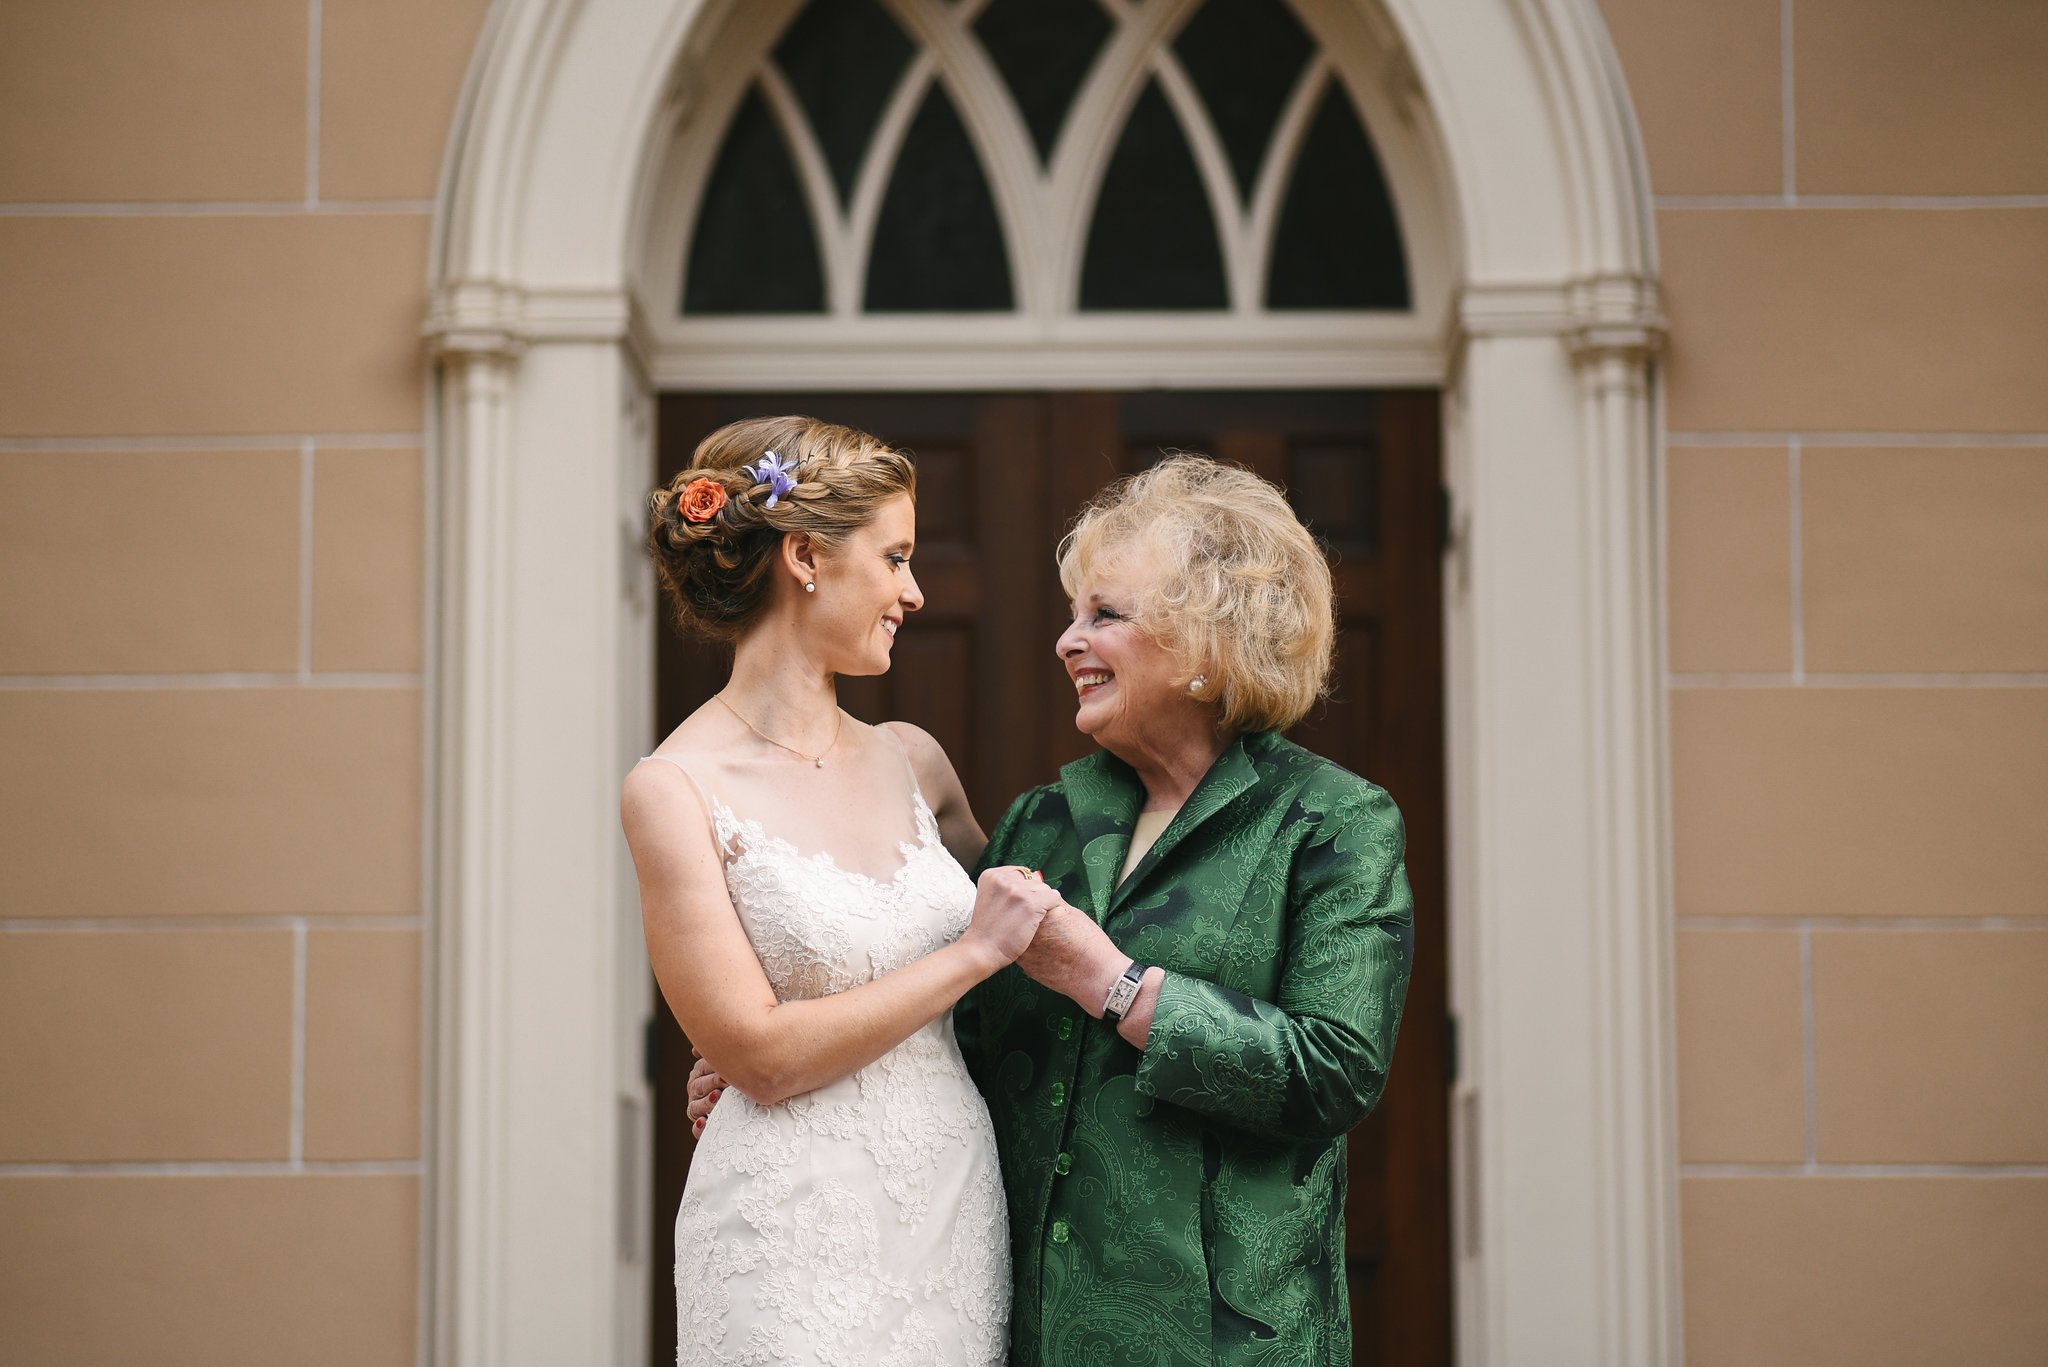 Alexandria, Virginia, Historic Wedding, Old Town, DC, Church Wedding, St. Paul's Episcopal Church, Mother of the Bride, Bride and Mother,